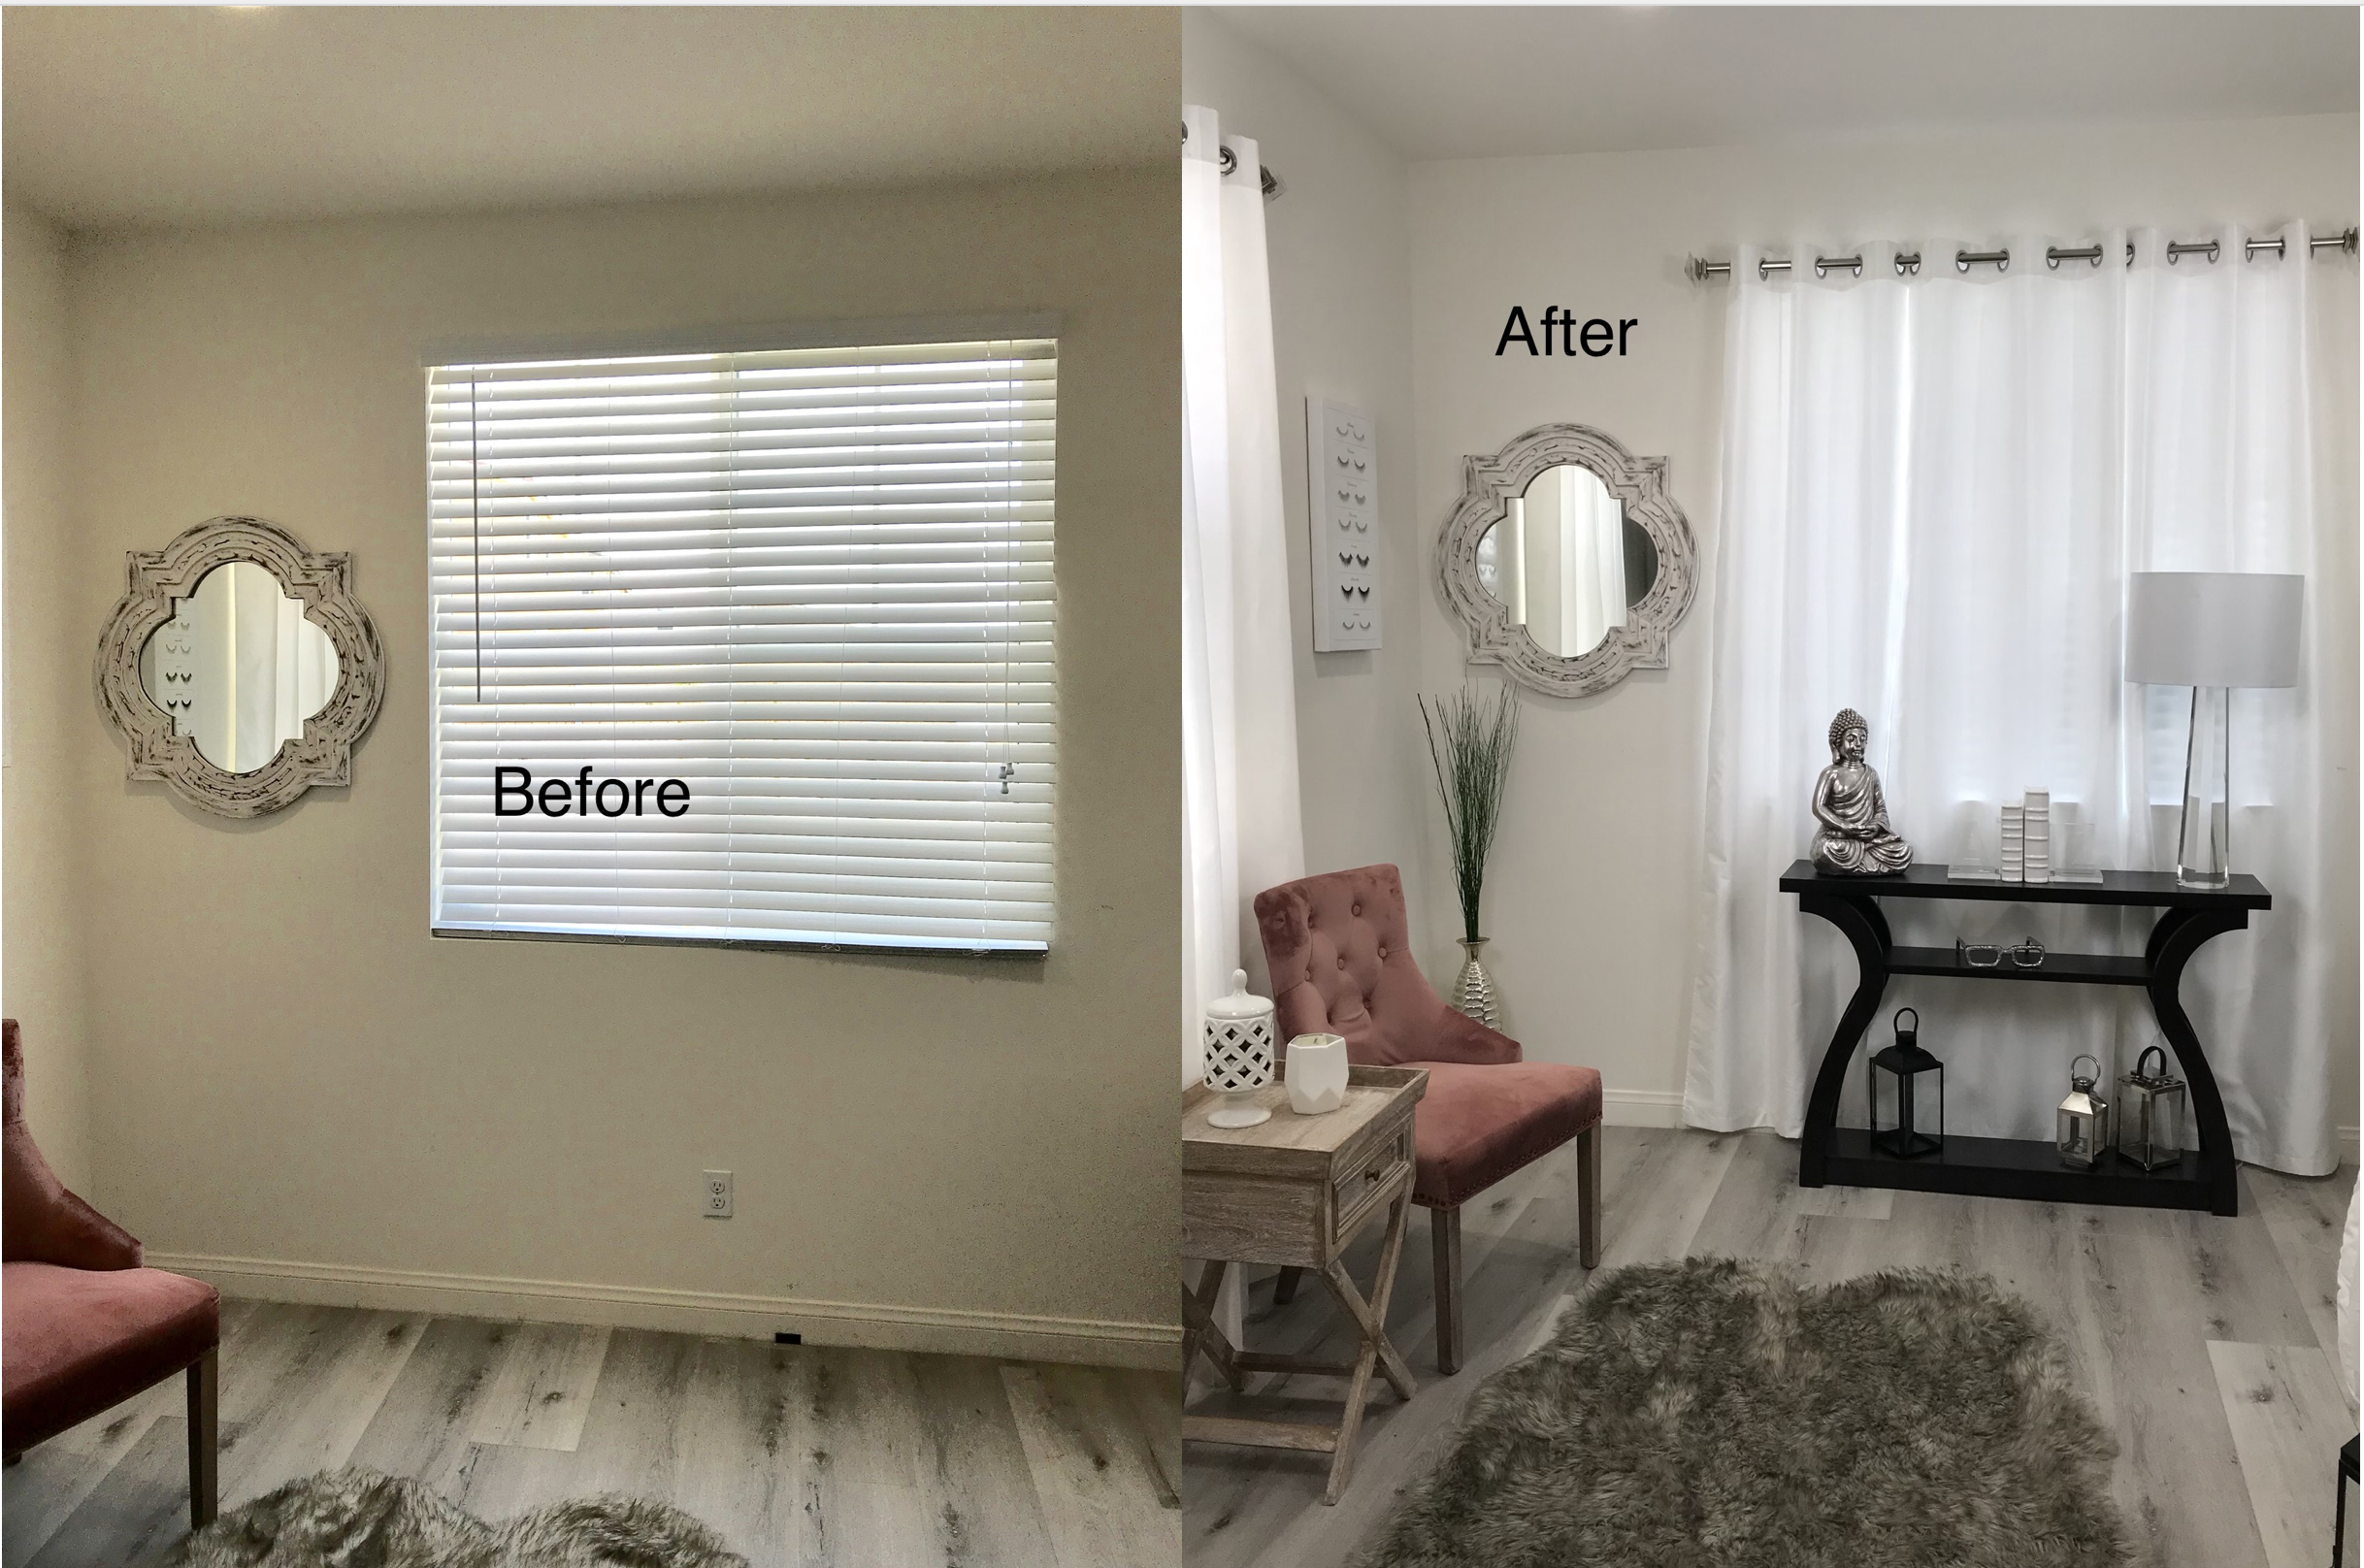 This can't get any easier. - The HouseOfMillan used NoNo Brackets to accomplish this amazing room transformation. A few key home decor pieces, some curtains, and No Holes in the walls. Perfect!https://www.instagram.com/houseofmillan/